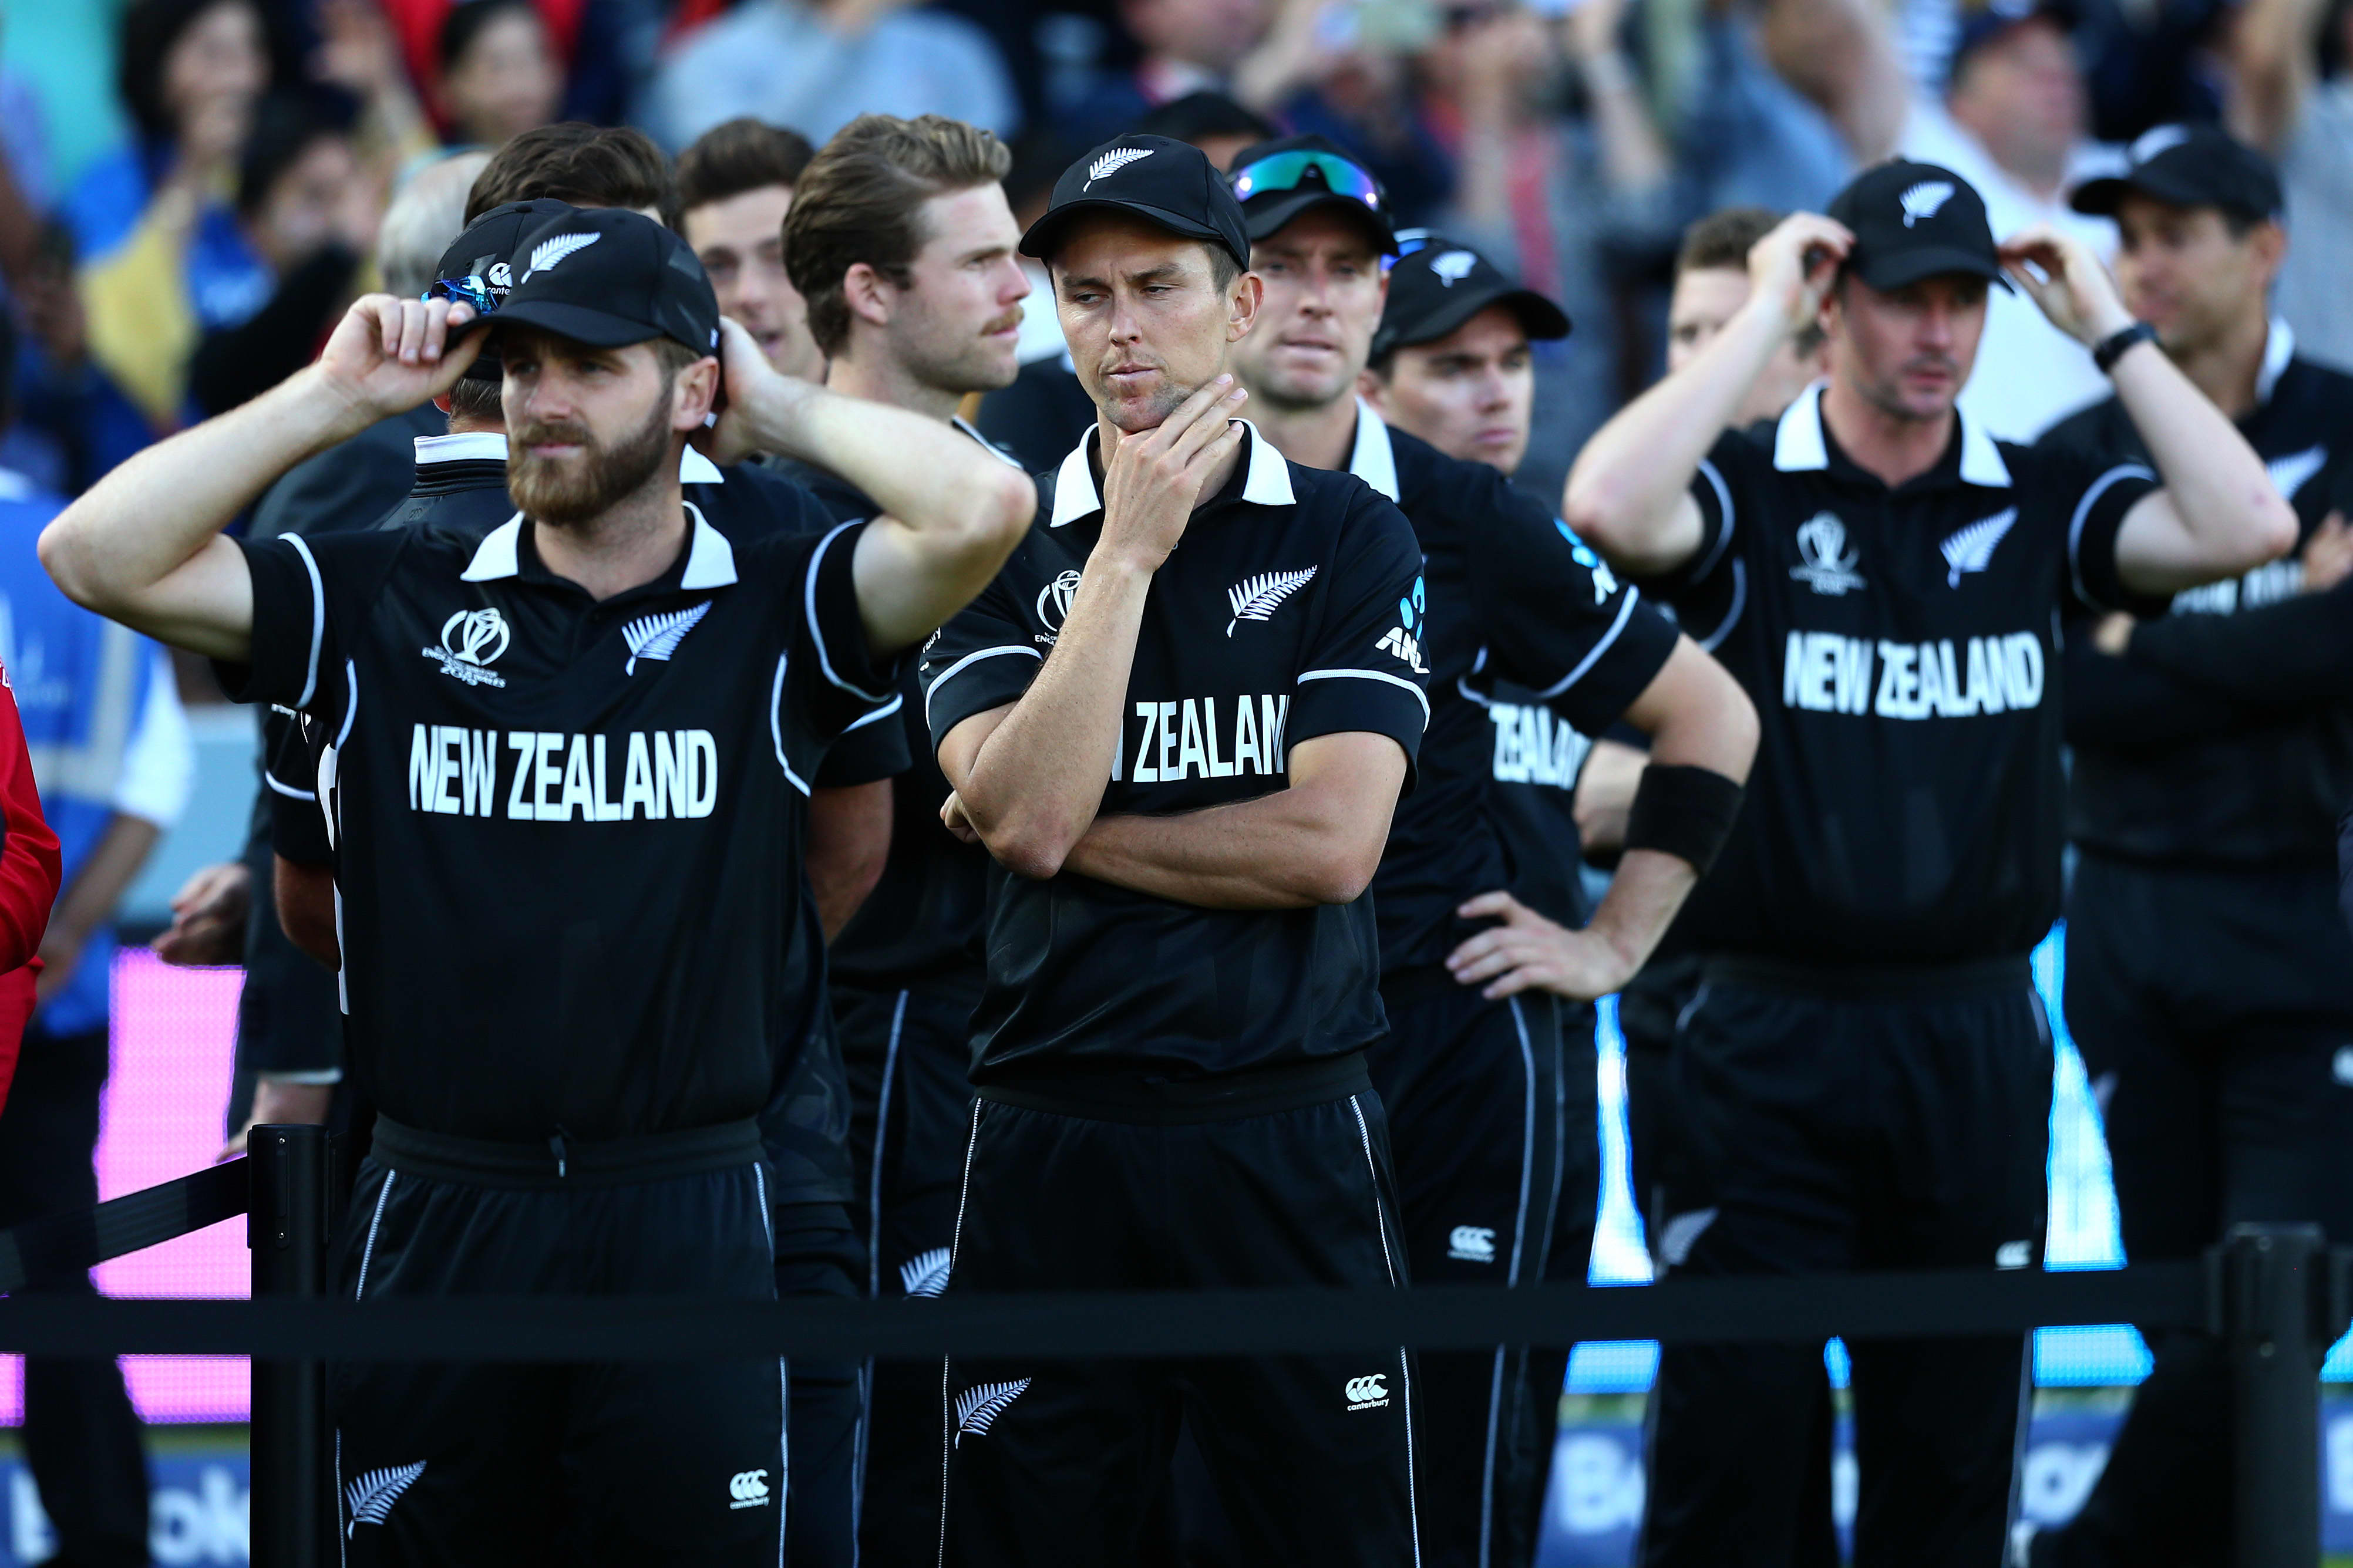 New Zealand fans agonize after defeat in thrilling Cricket world cup final thumbnail